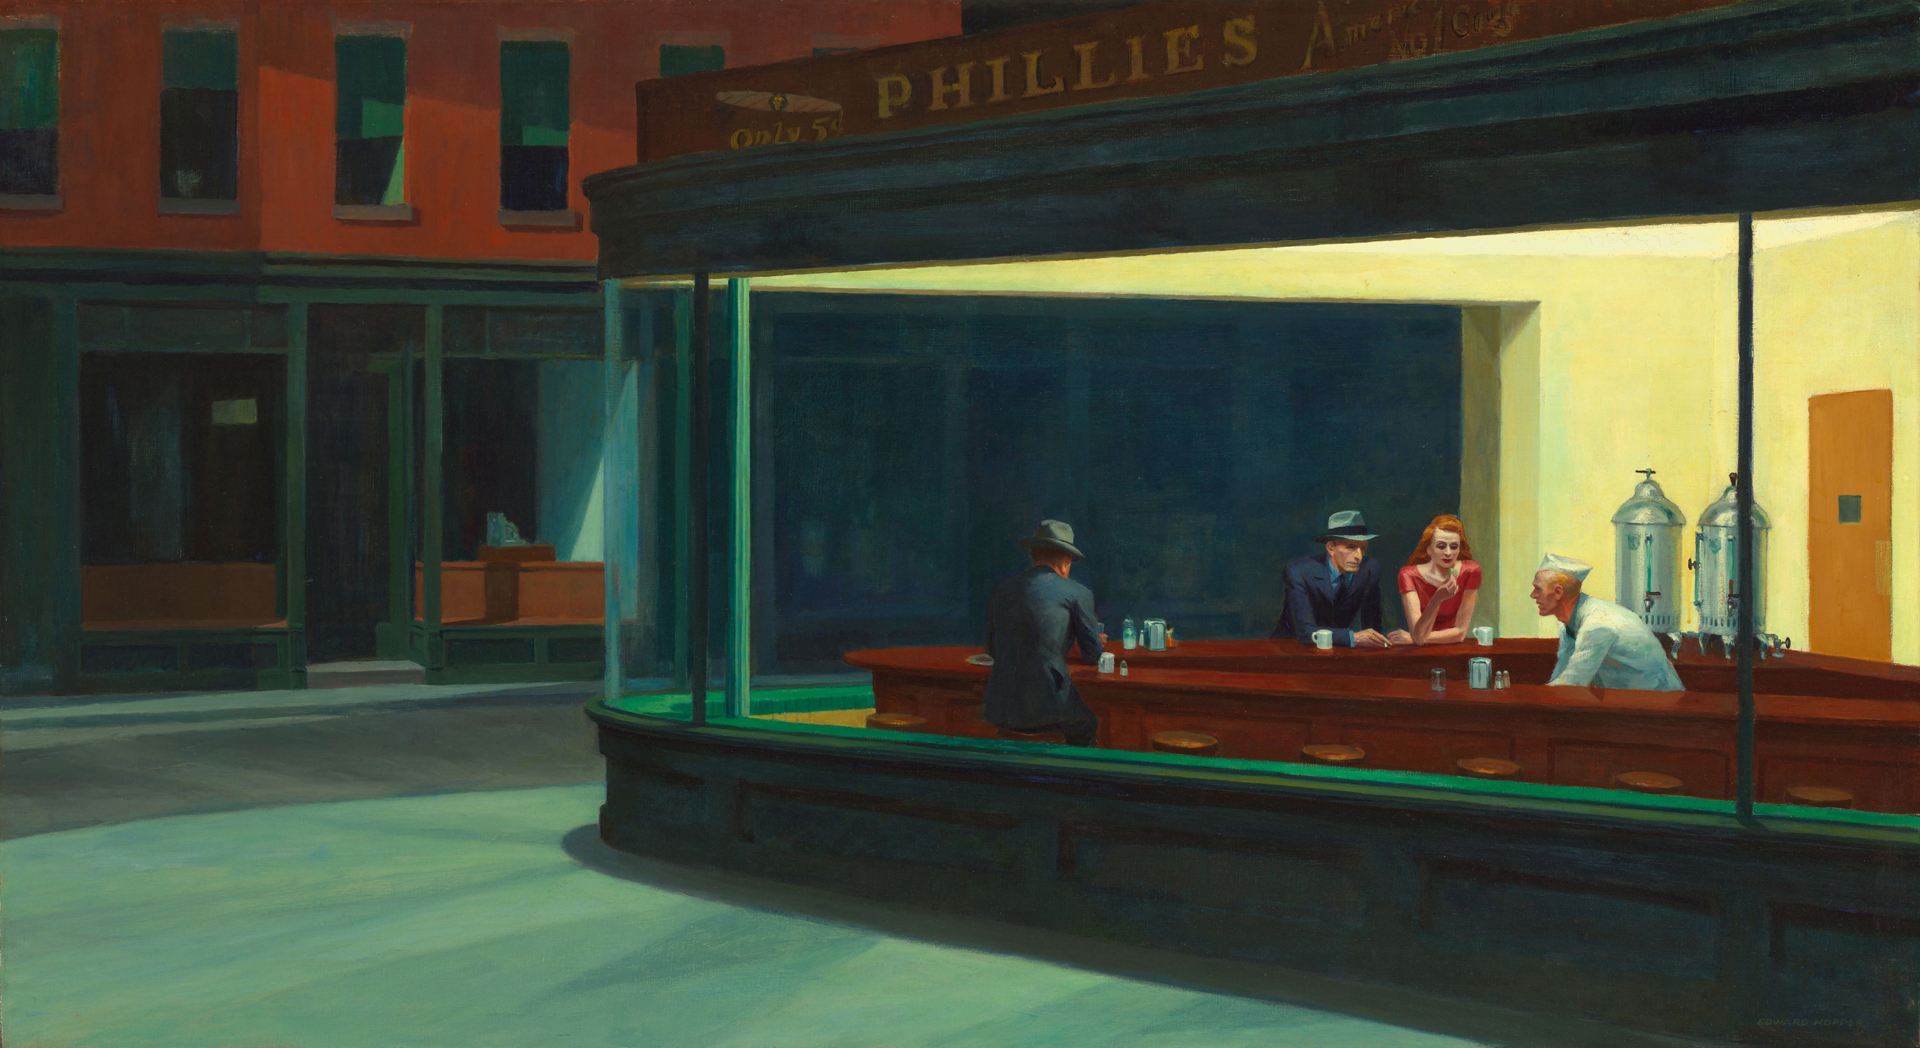 Edward_Hopper_Nighthawks1942_x1920